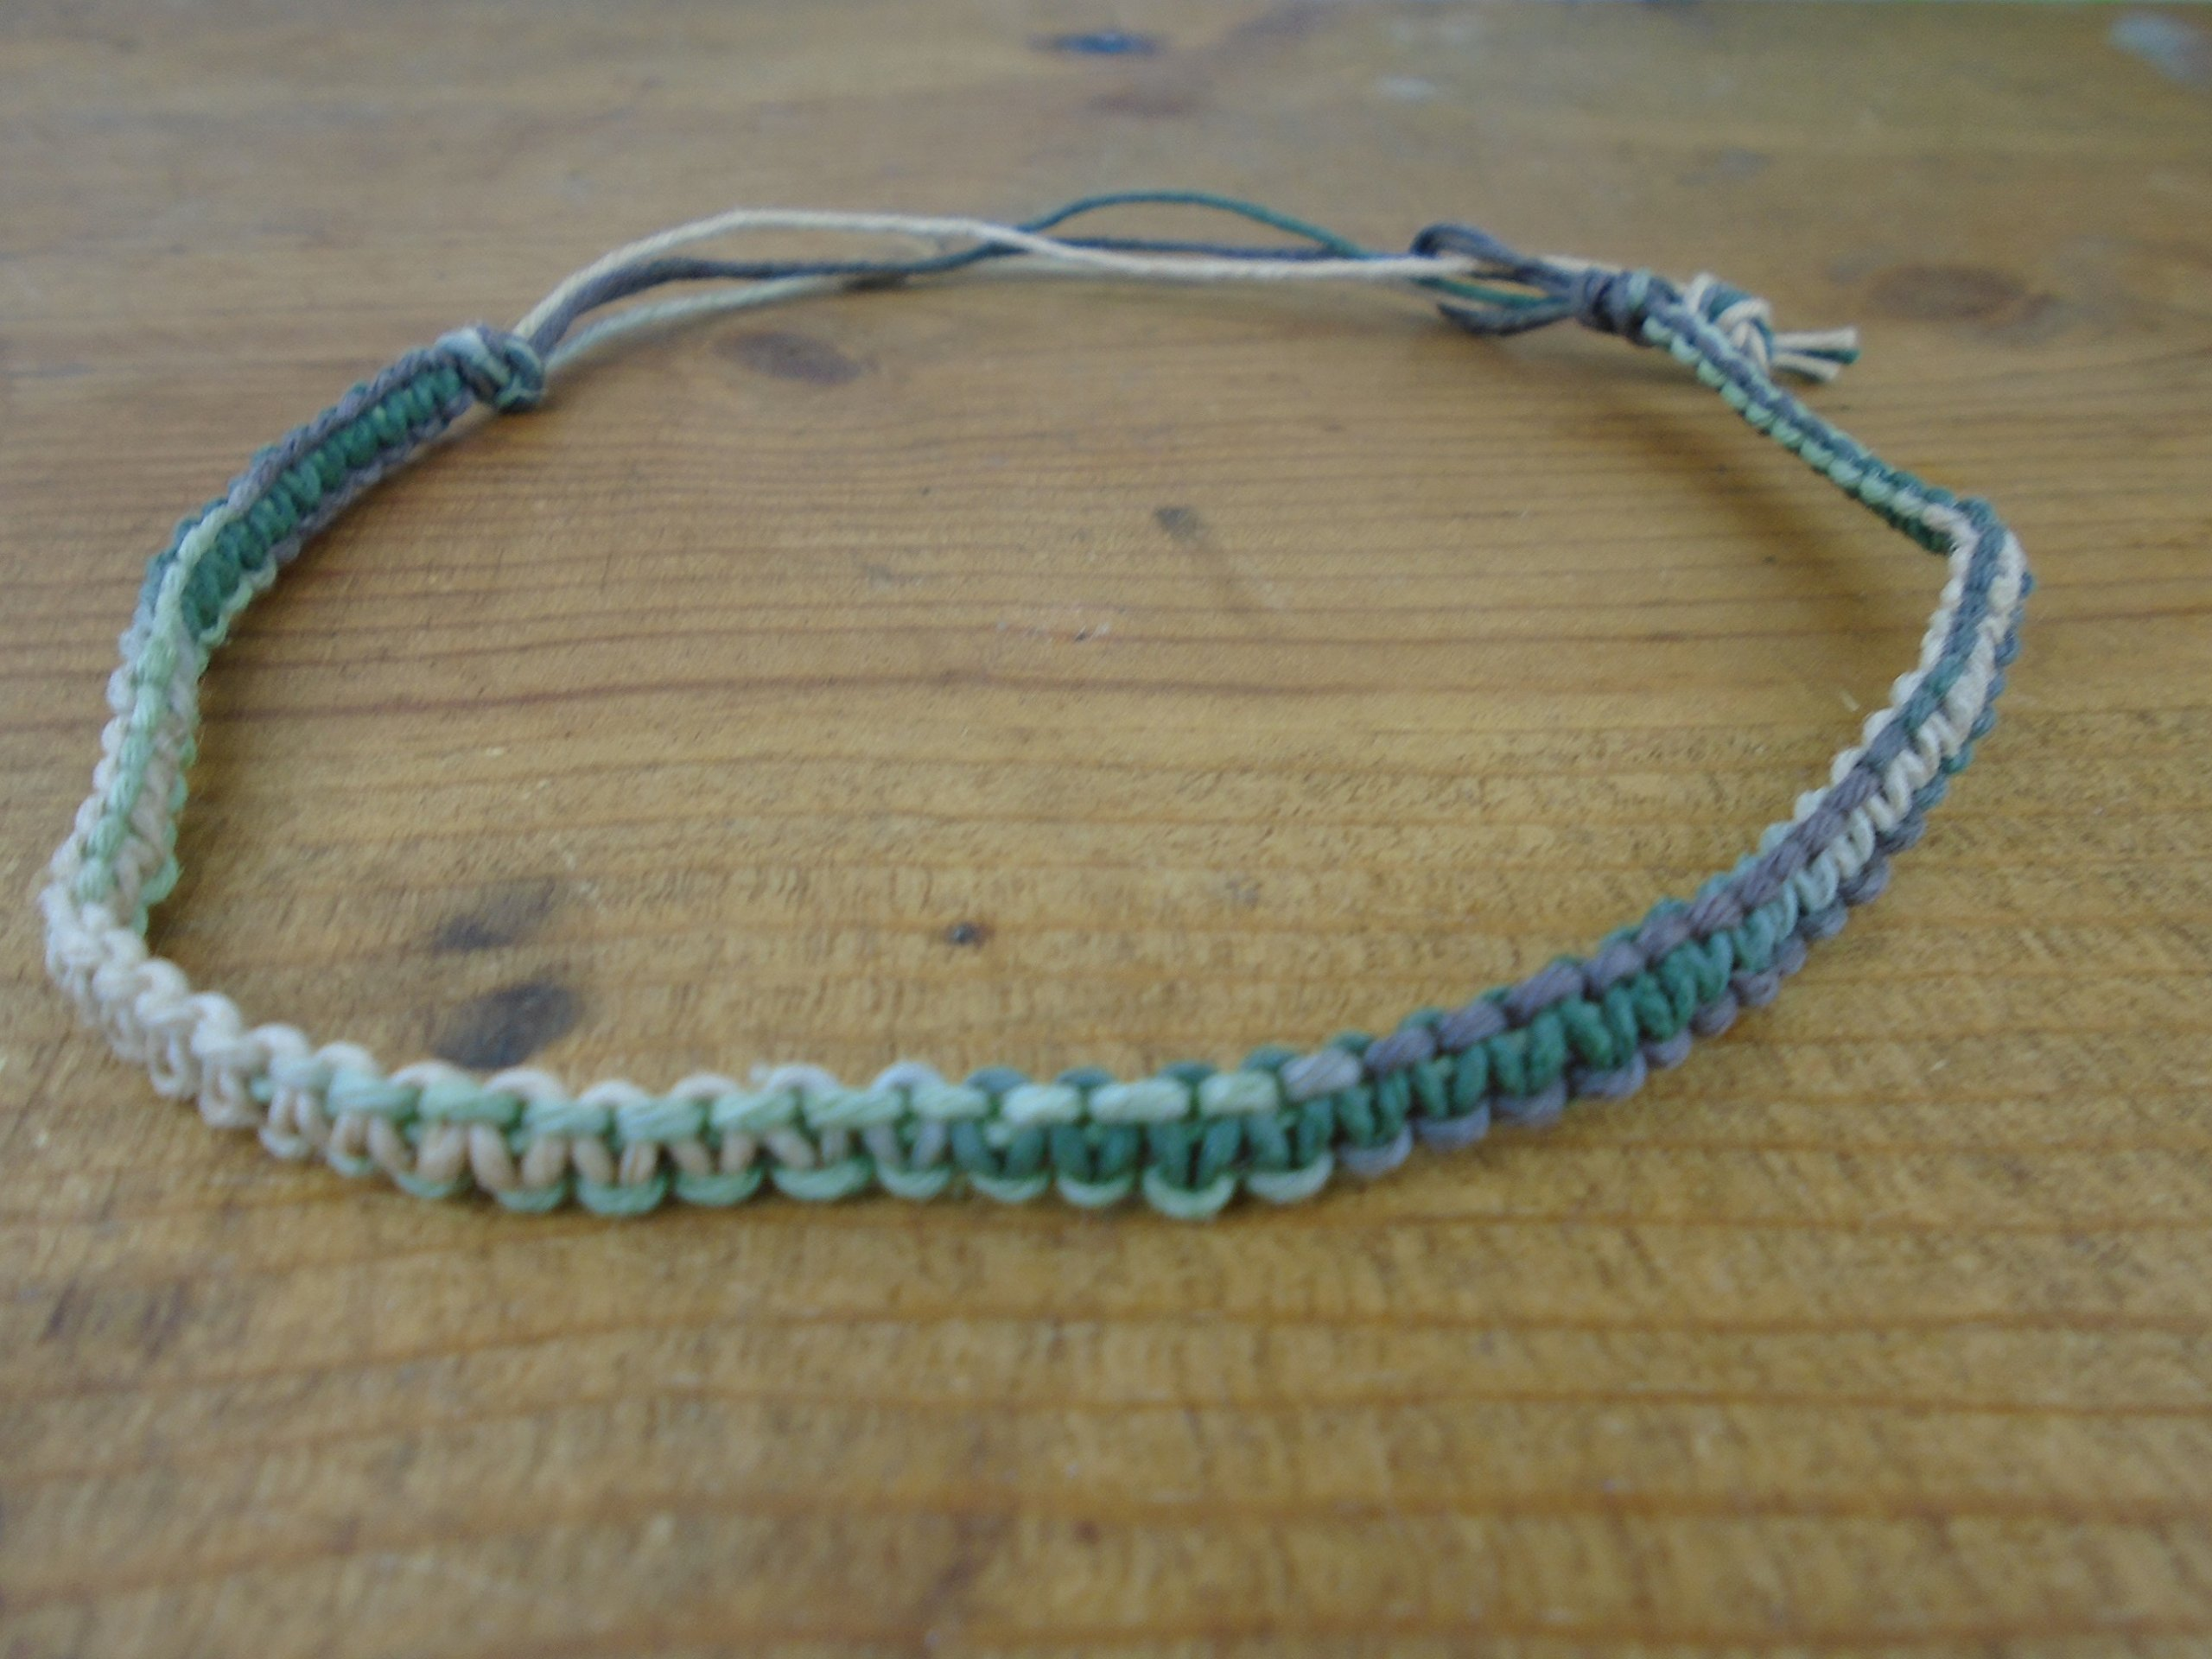 Camouflage Hemp Anklet Adjustable 9-13 inches Men's or Women's, Camo Macrame